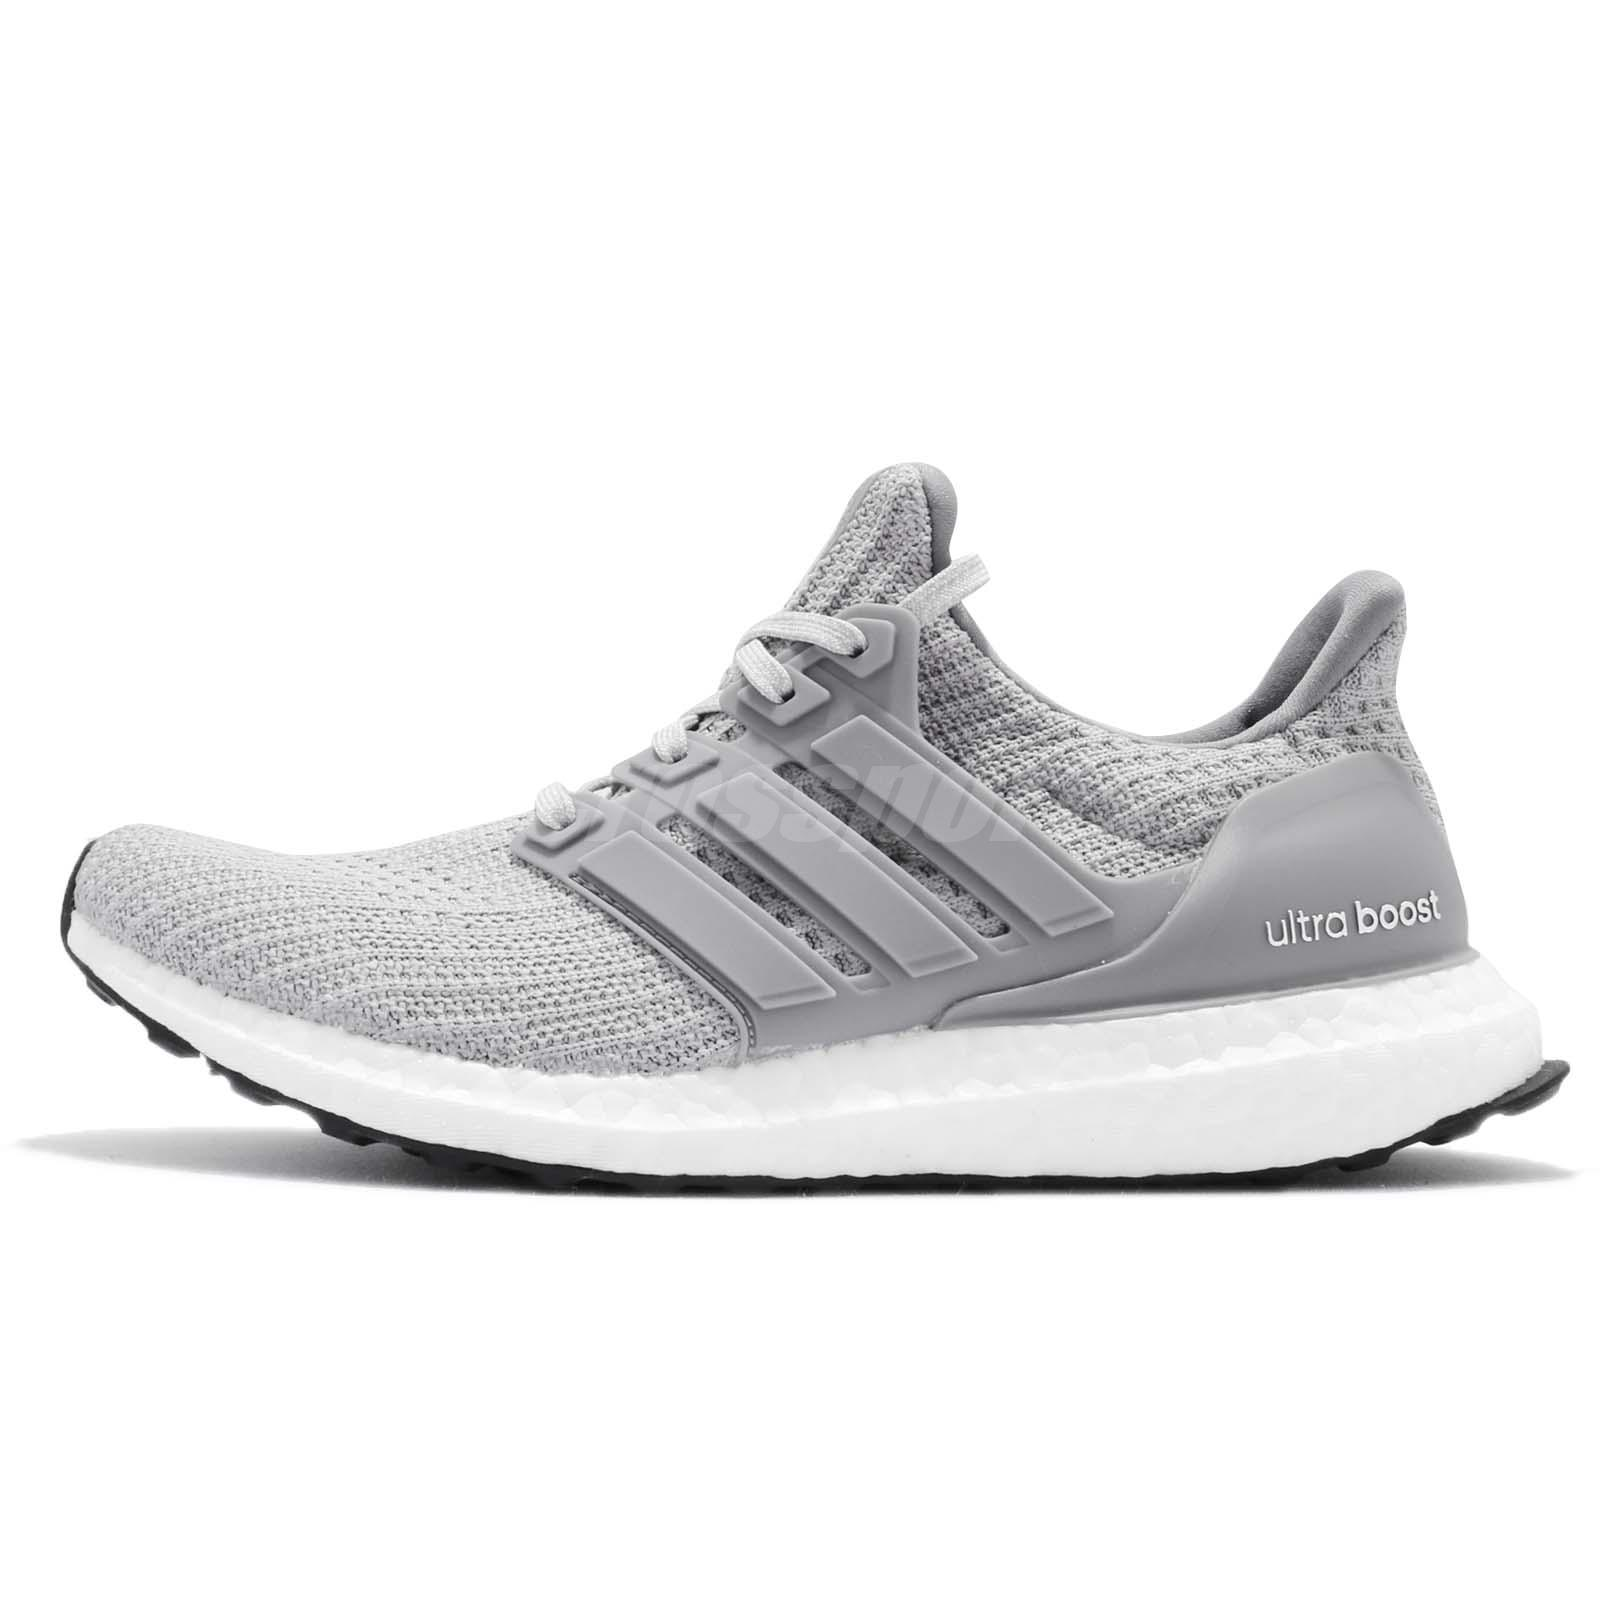 2fb854a213d adidas UltraBOOST W 4.0 Grey White Women Running Casual Shoes Sneakers  BB6150